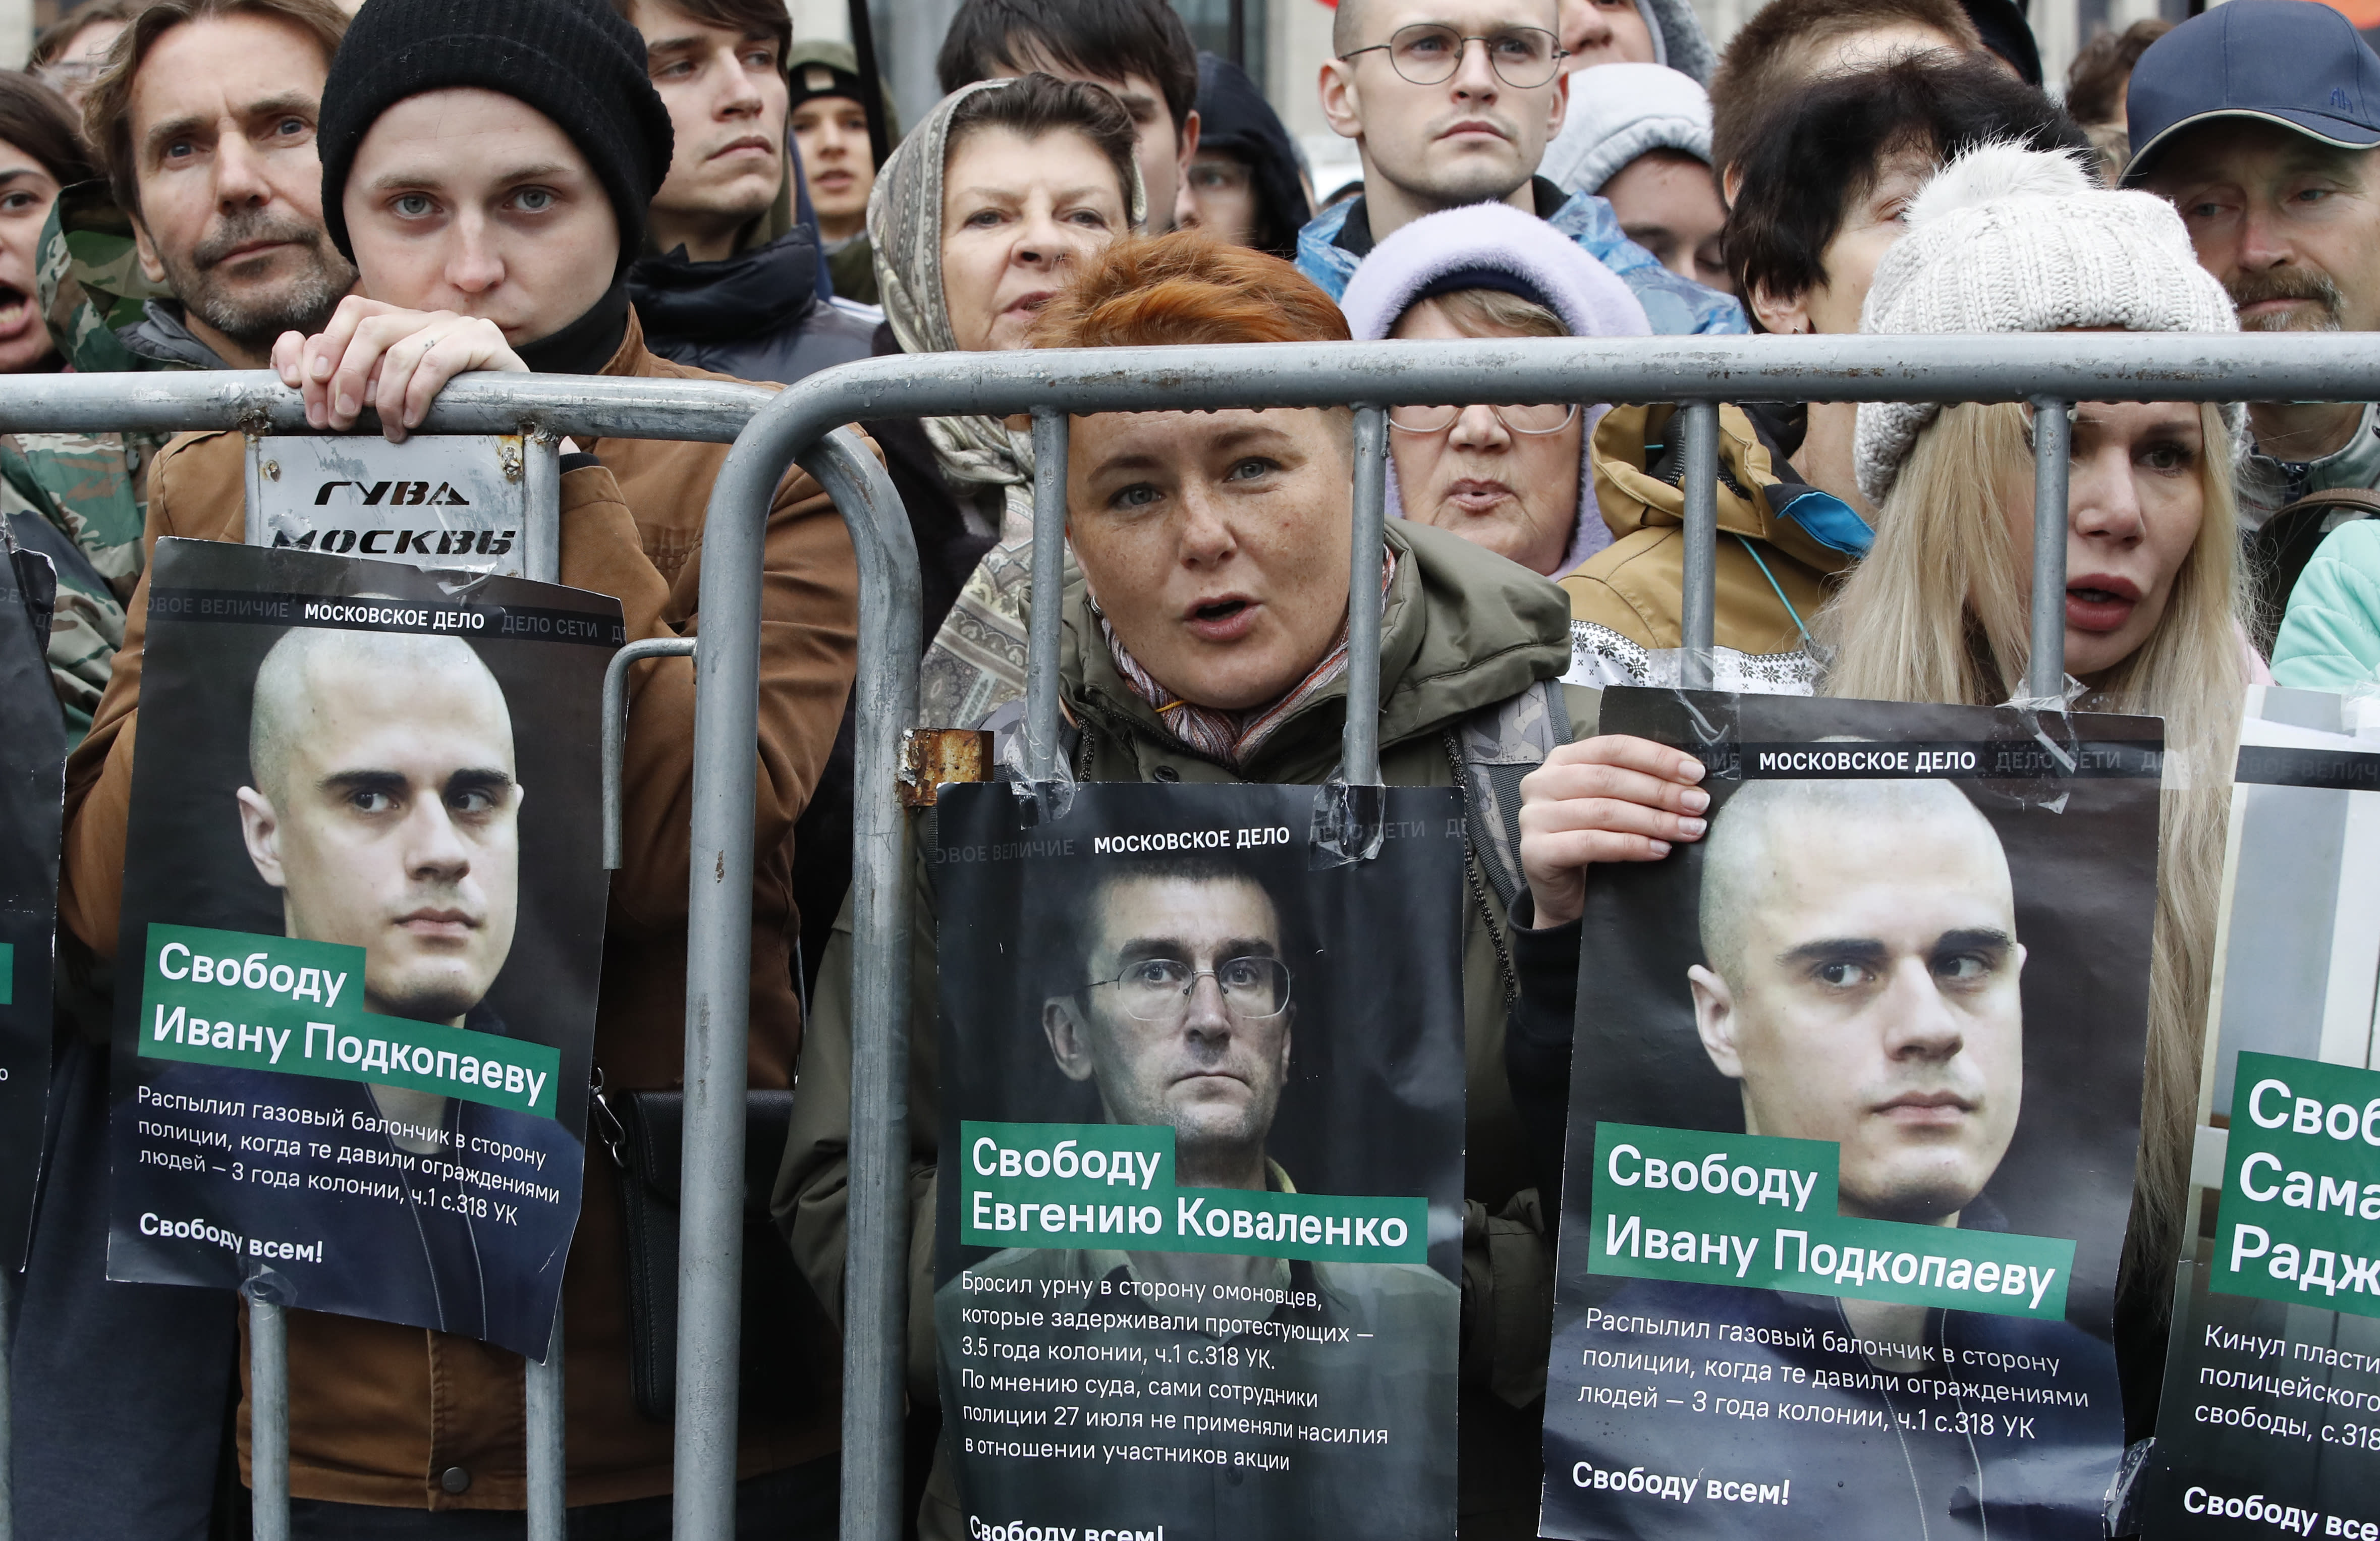 Navalny calls for release of political prisoners at Moscow rally